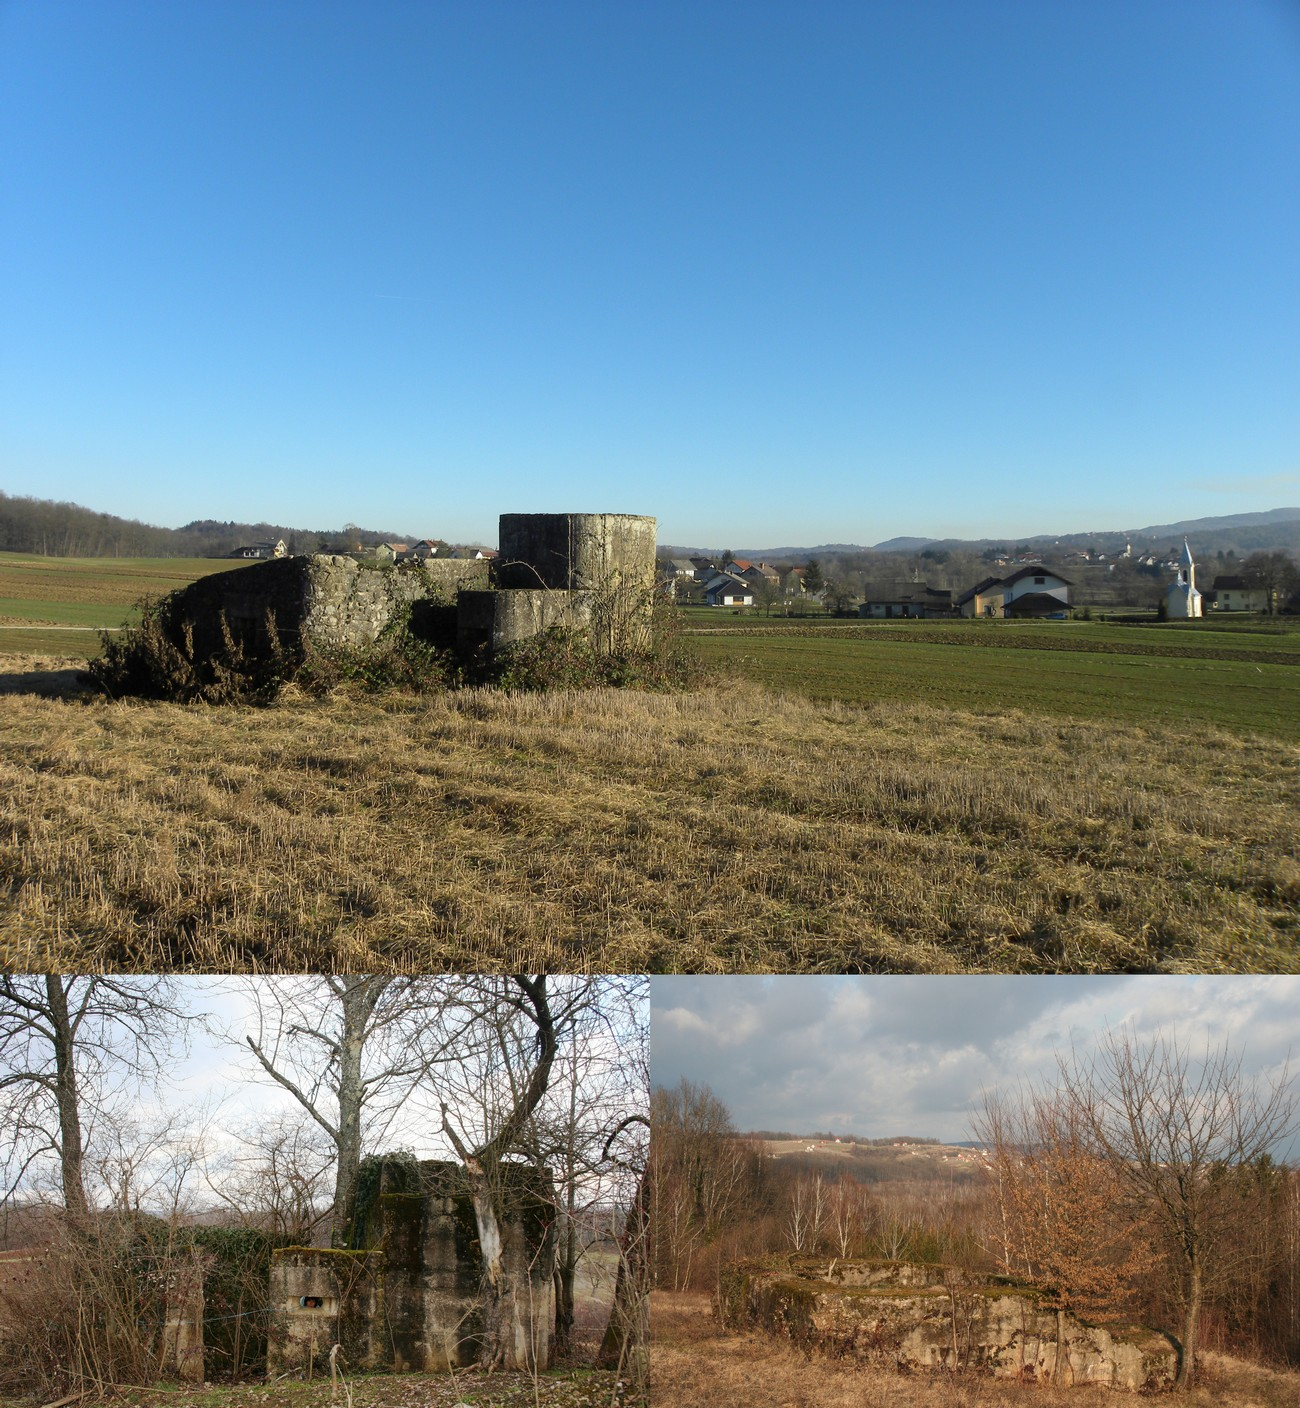 Along the zone of barbed wire, they built 6 strong concrete bunkers between early August and early September 1943. Four of them have been preserved to this day. The photograph shows the bunker near the village of Radoviči and Rosalnice. Authors: Blaž Štangelj and Božidar Flajšman.